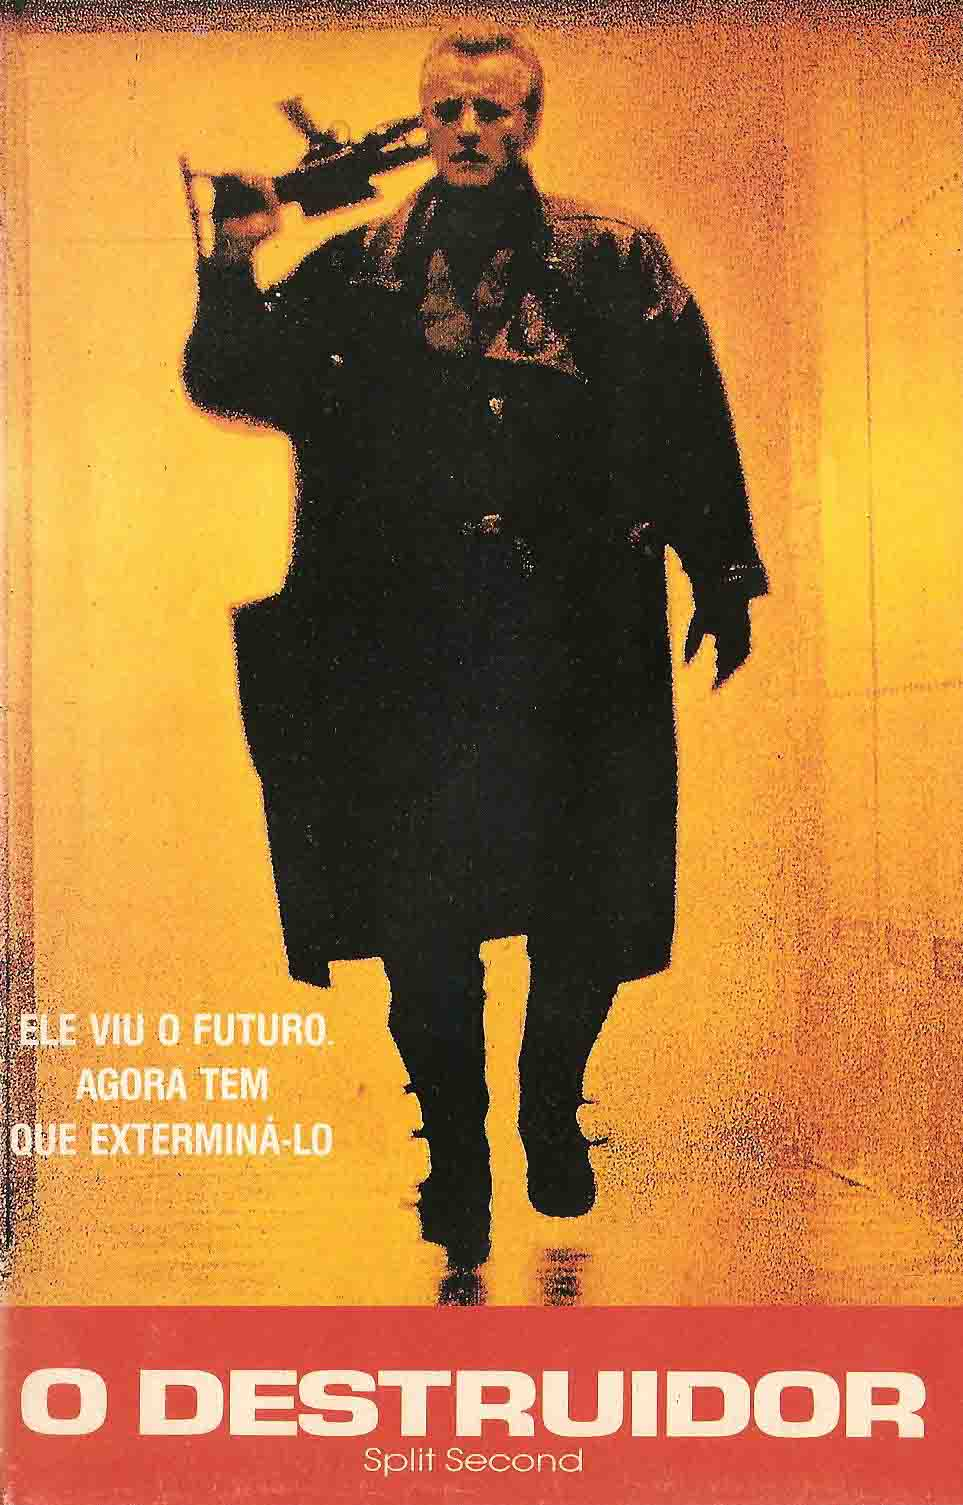 O Destruidor Torrent – Blu-ray Rip 720p Dublado (1993)